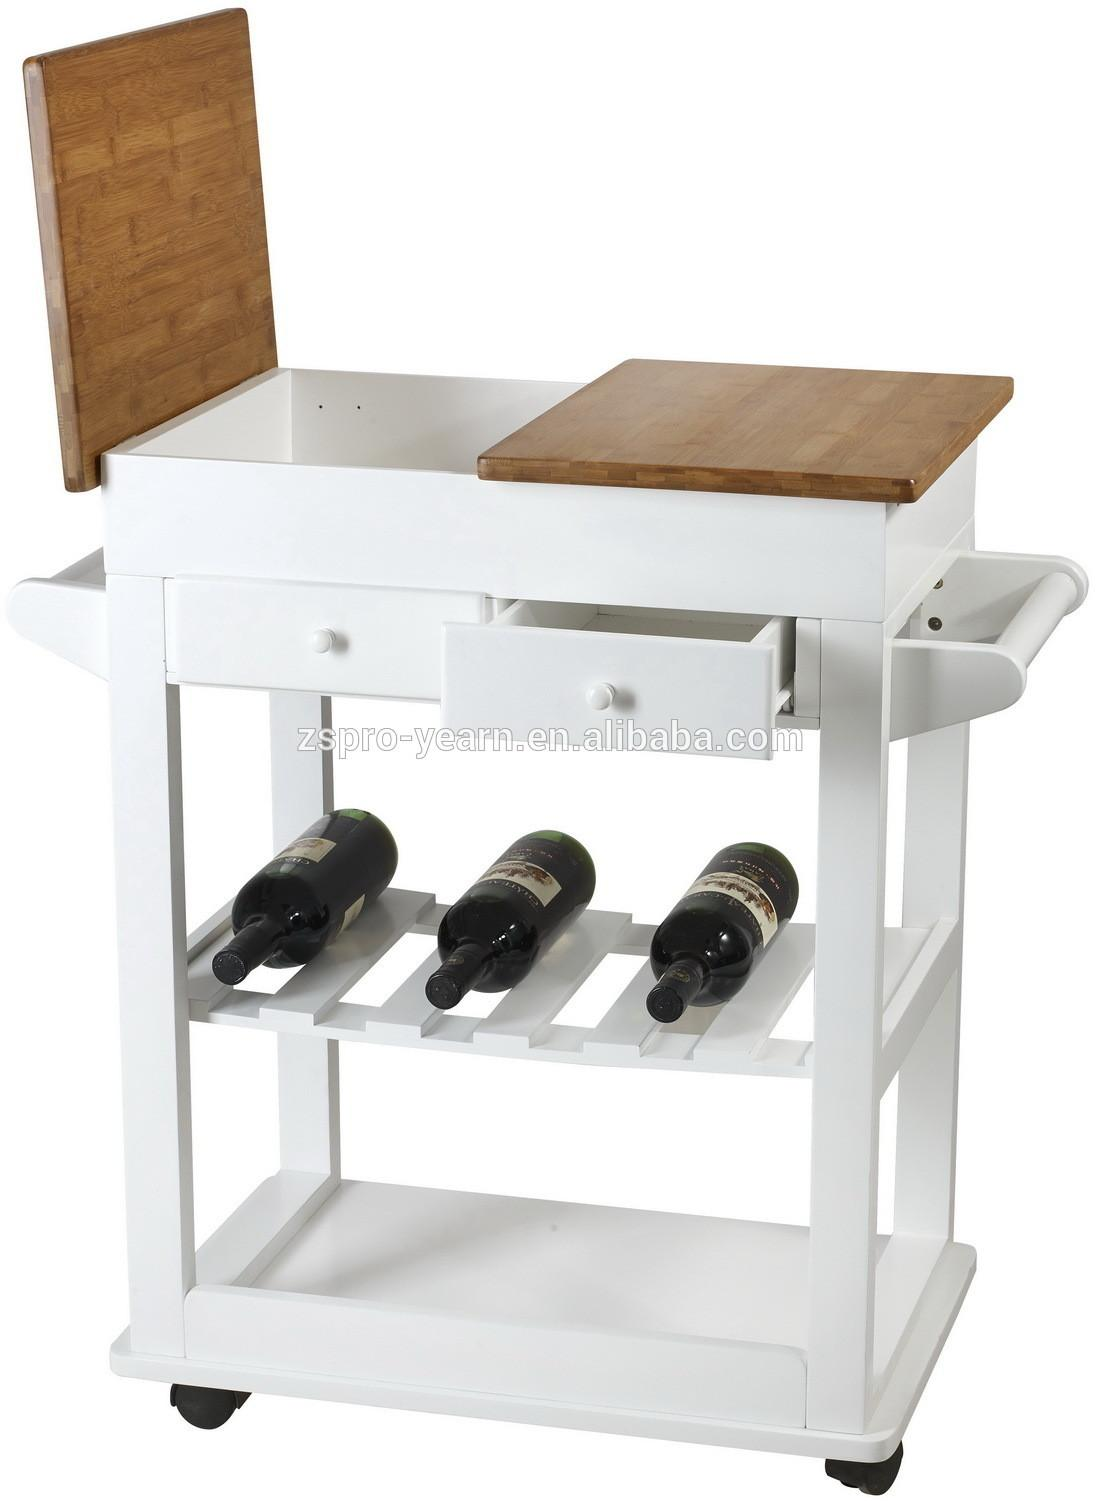 Modern Wooden Bamboo Kitchen Serving Trolley Table